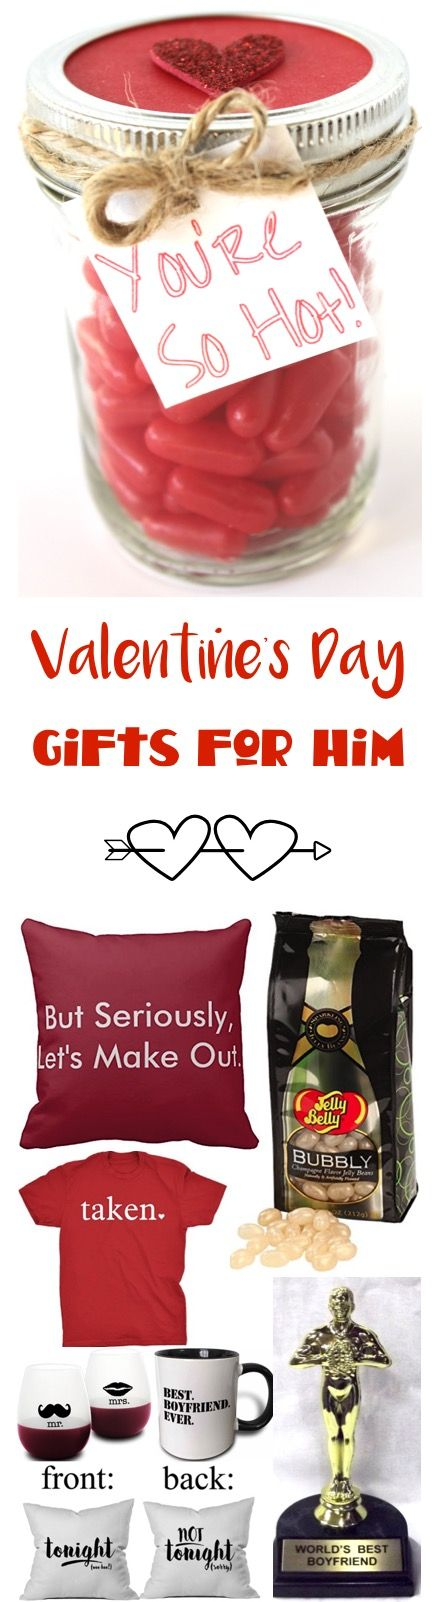 44 Valentines Day Gifts For Him So Many Fun Silly And Romantic